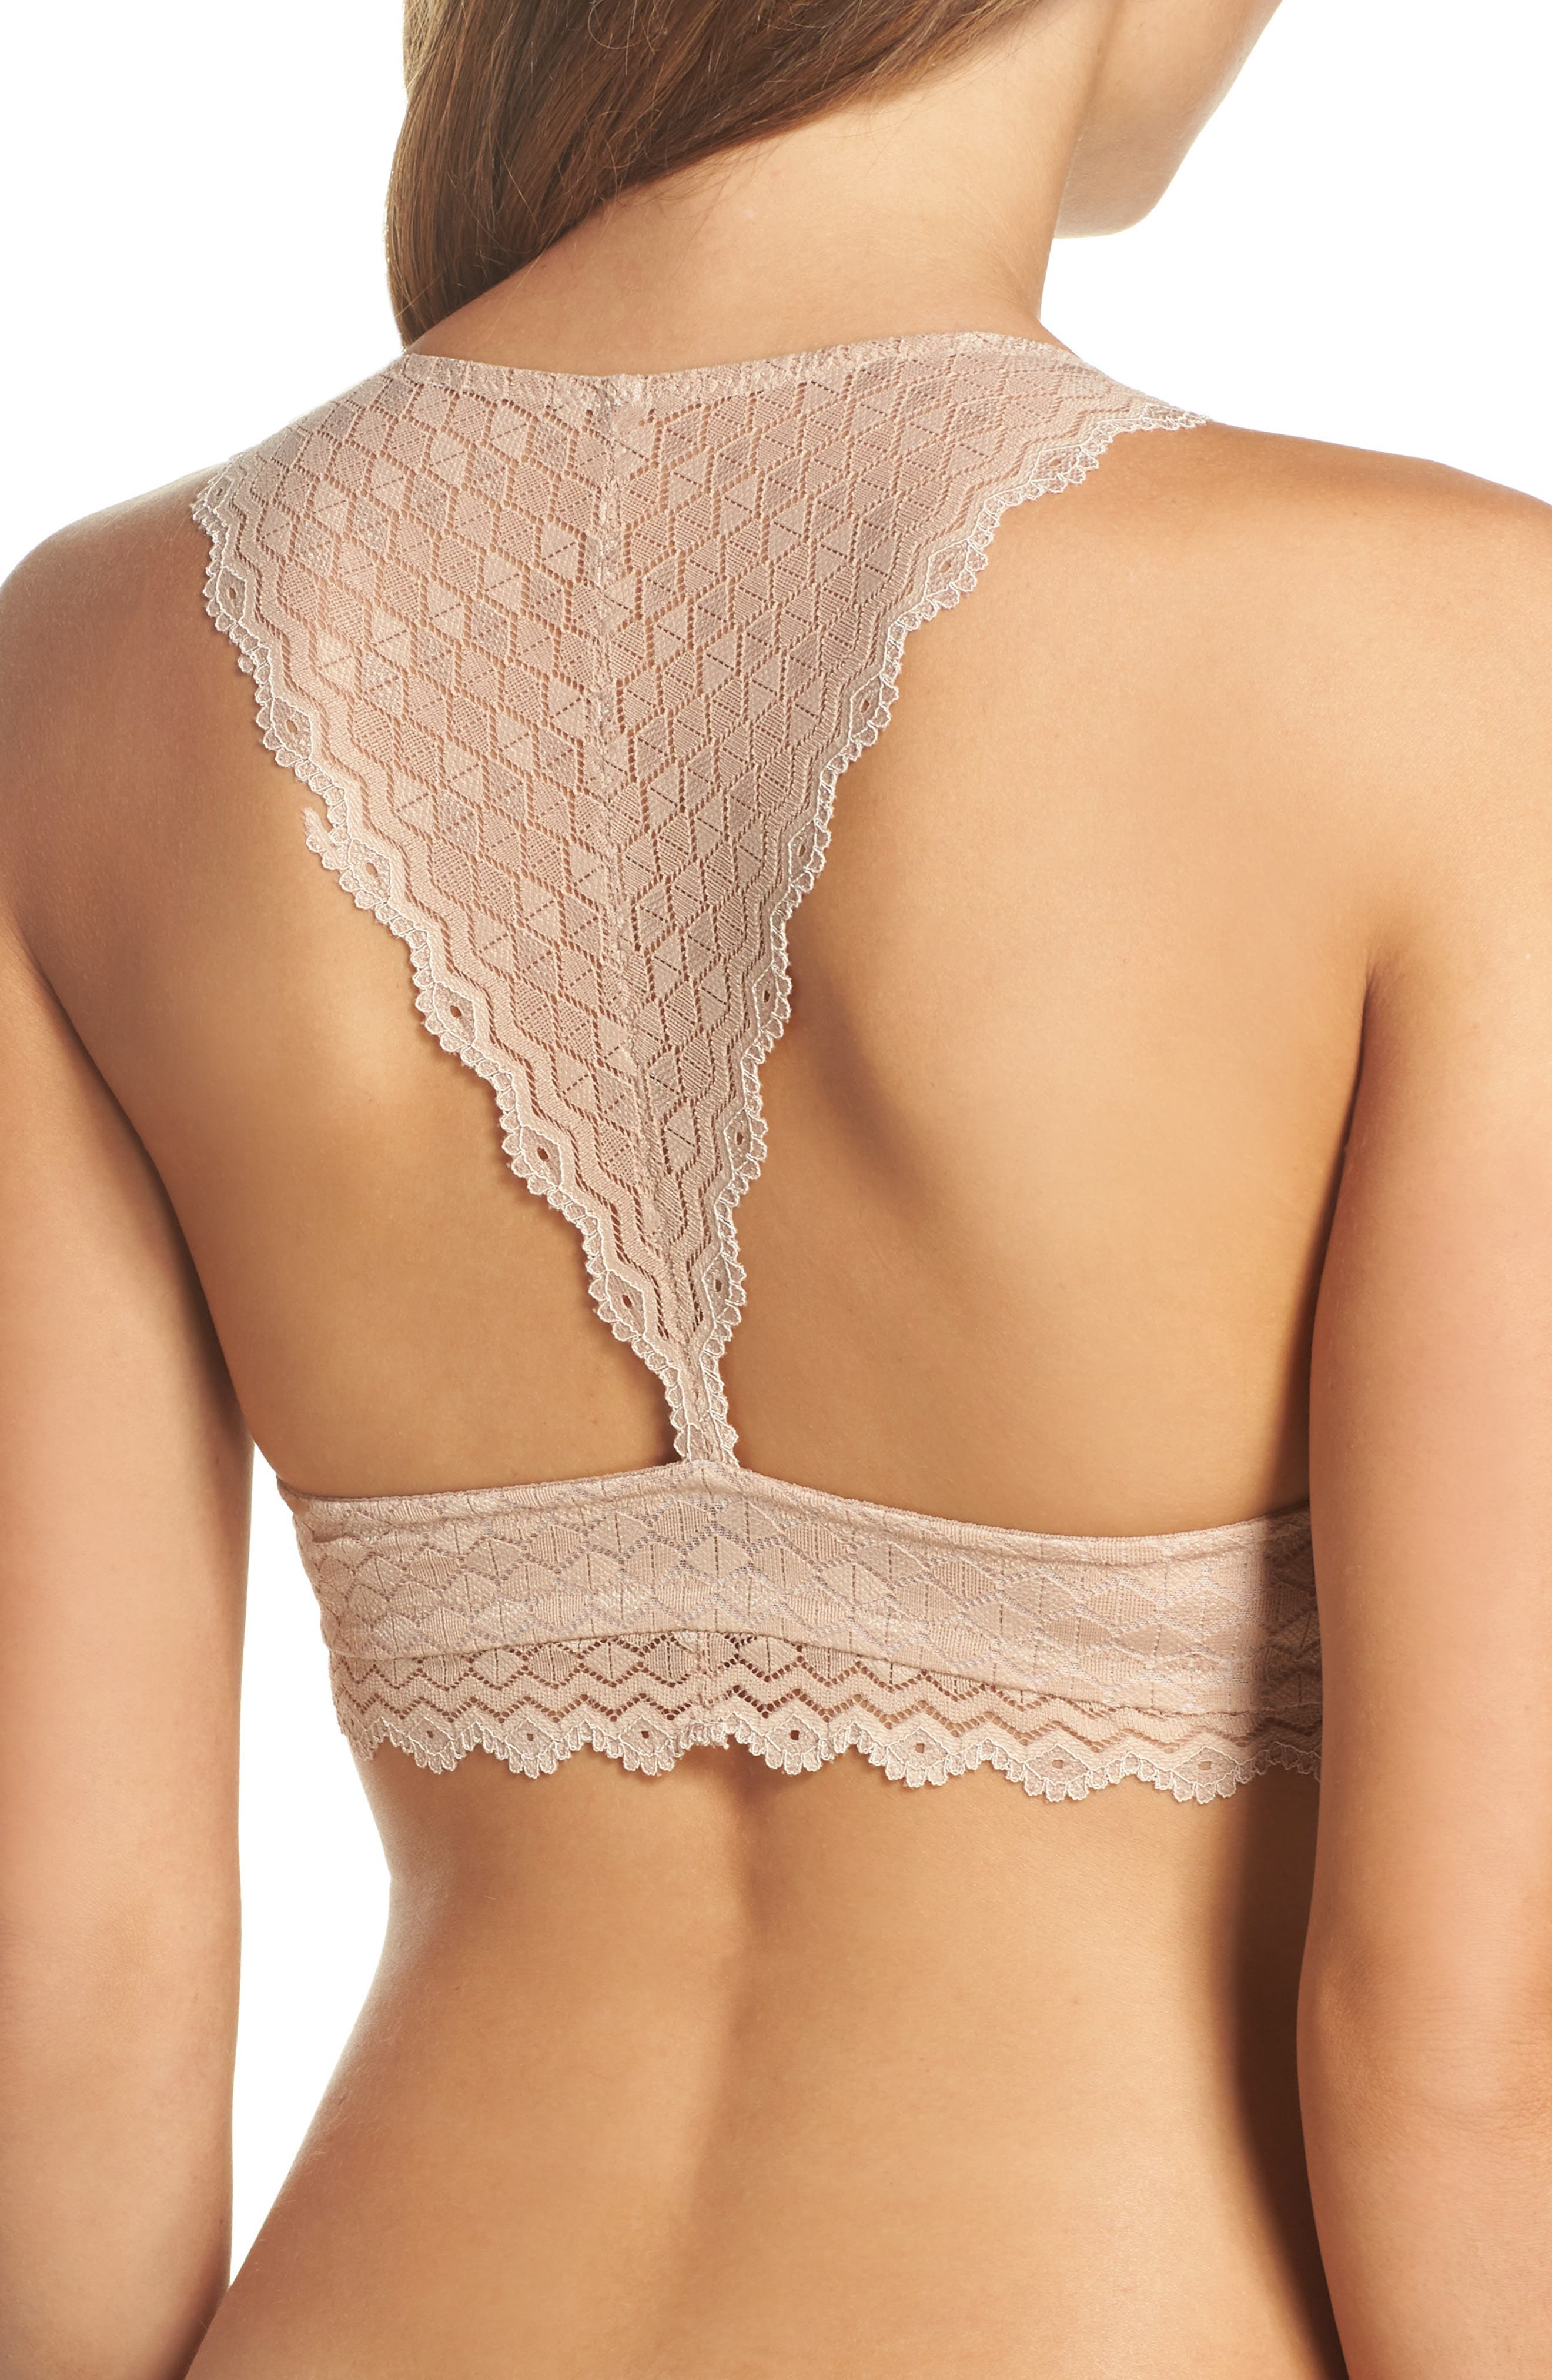 Alternate Image 2  - b.tempted by Wacoal Plunge Lace Bralette